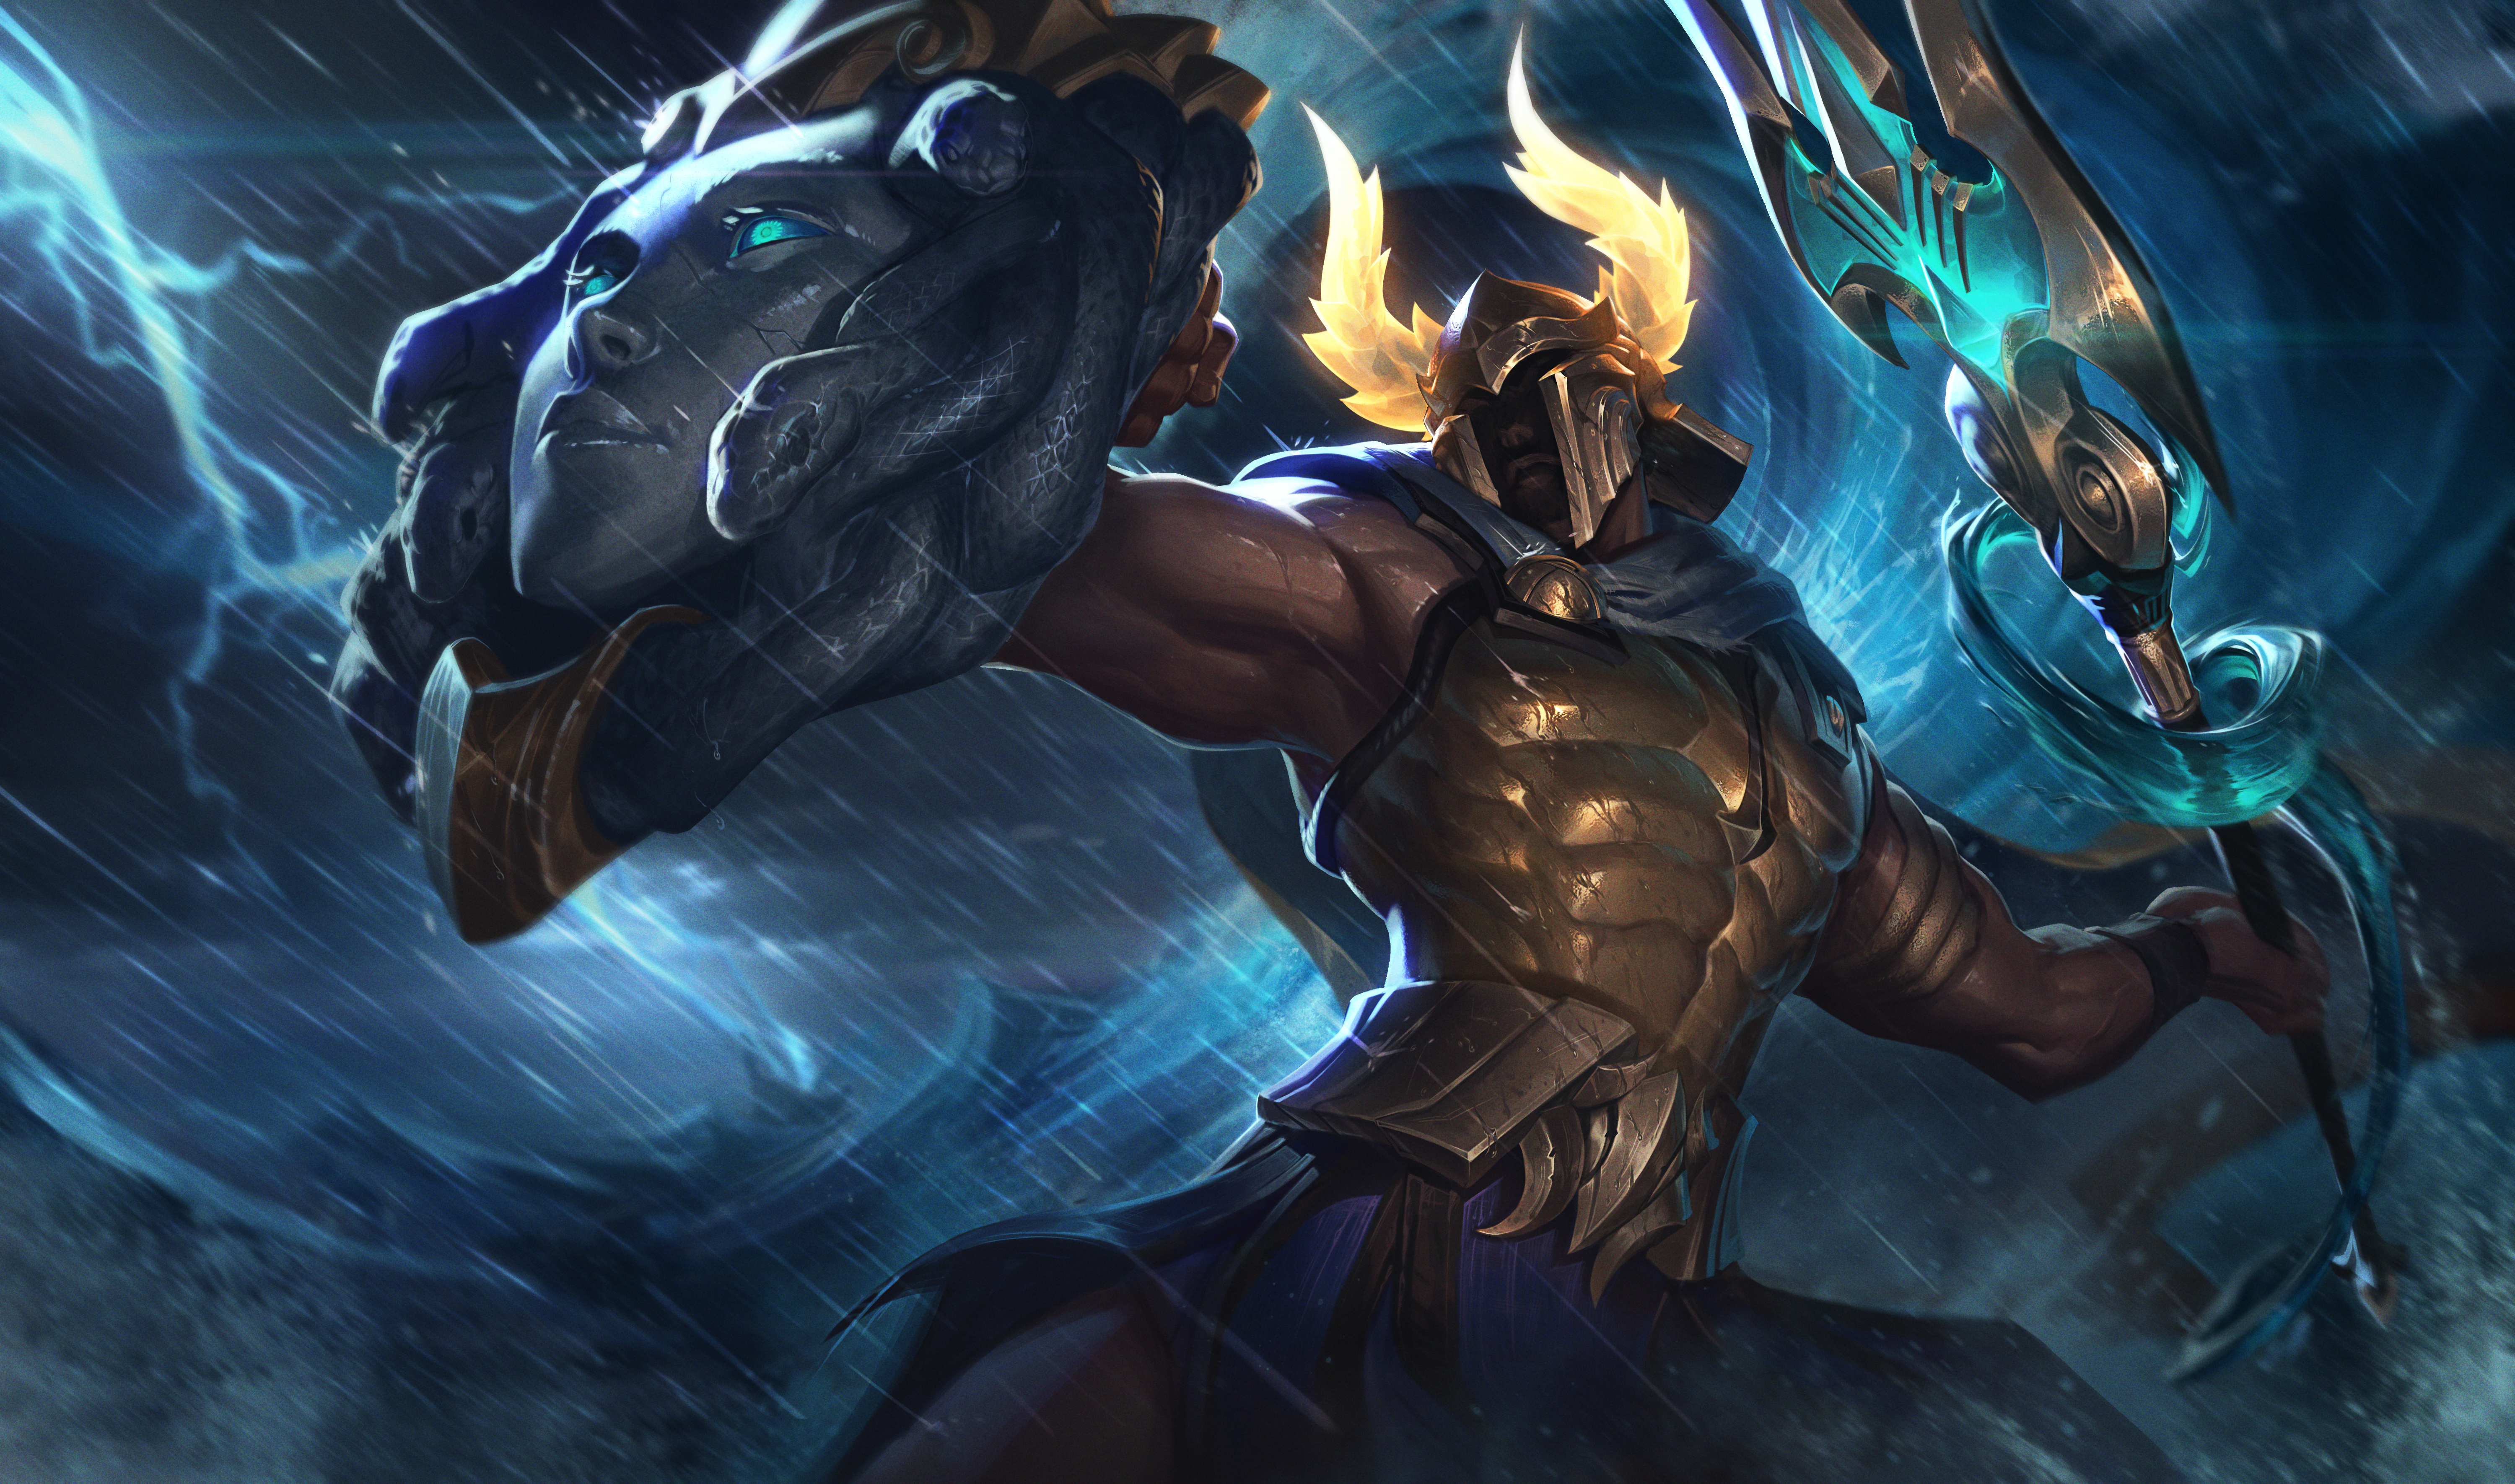 Perseus Pantheon's splash art, which has more of an aquatic and godly theme. He wields a trident and uses a shield that looks like it has Medusa's head on it.